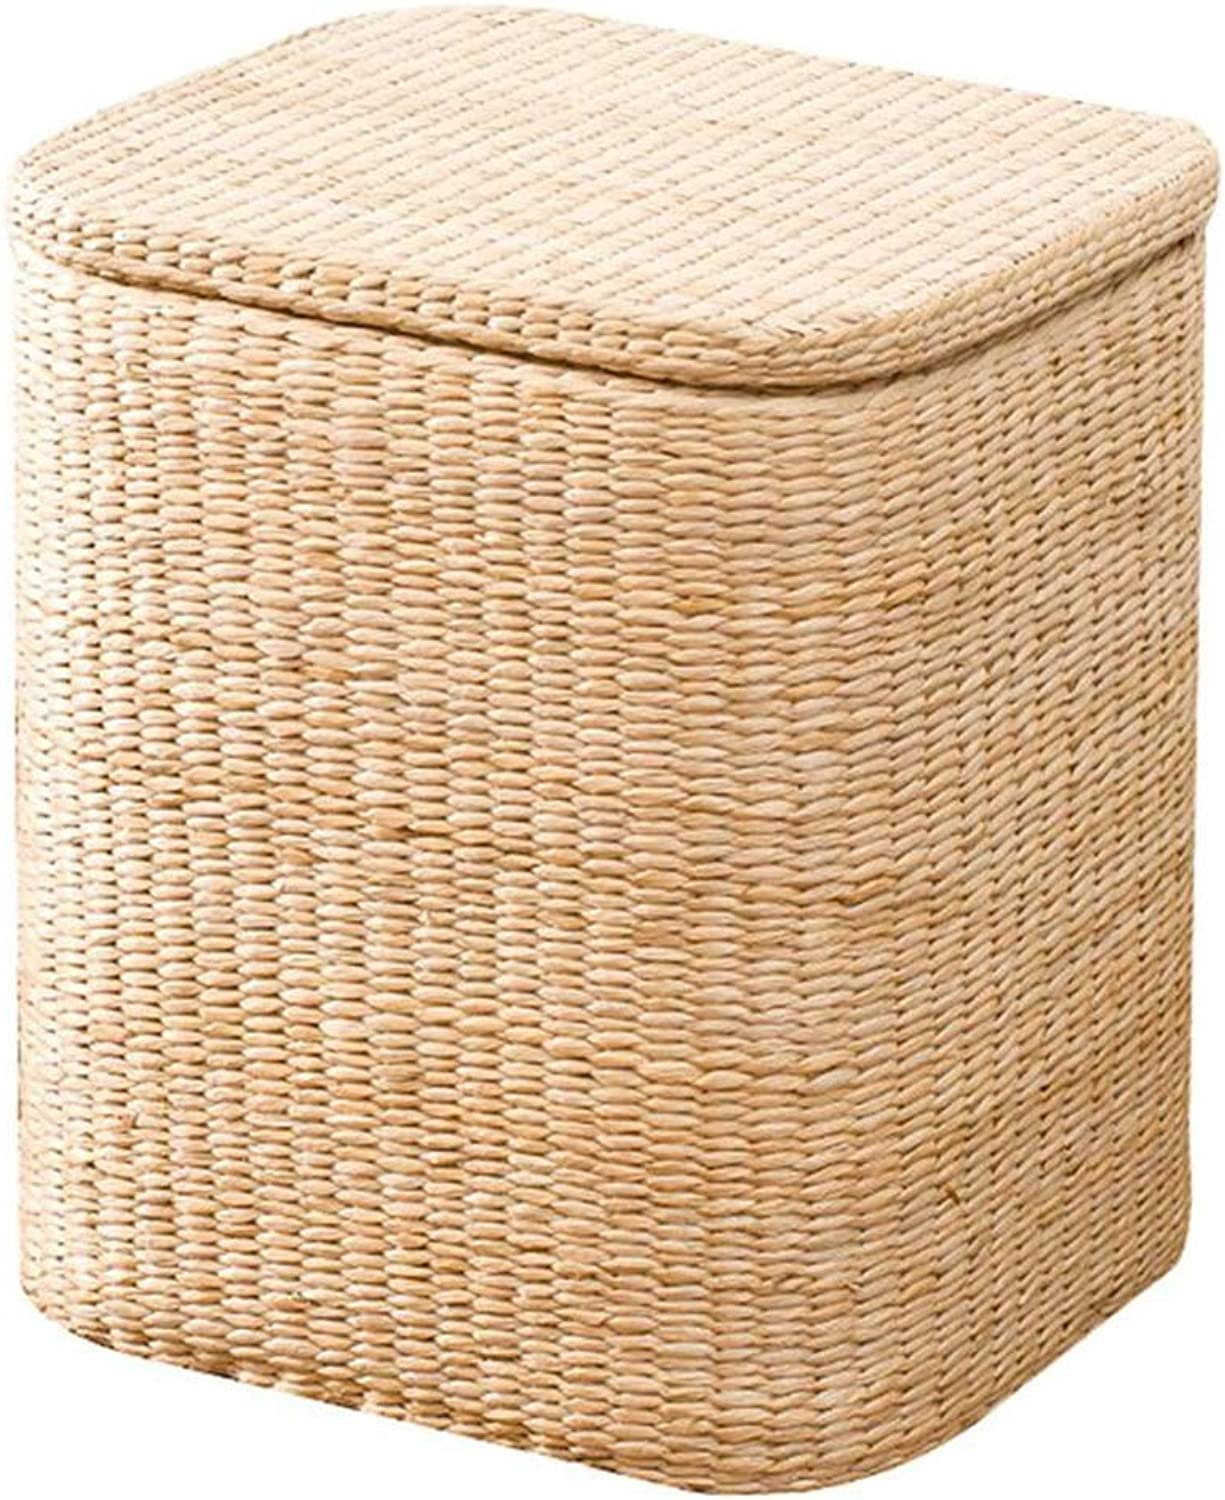 Stools Footstool Step Stool Vine Straw Storage Sort Out Covered Wholesale Footrest Sofa Can Sit Toy CONGMING (color   B-Square-Grass, Size   Small)